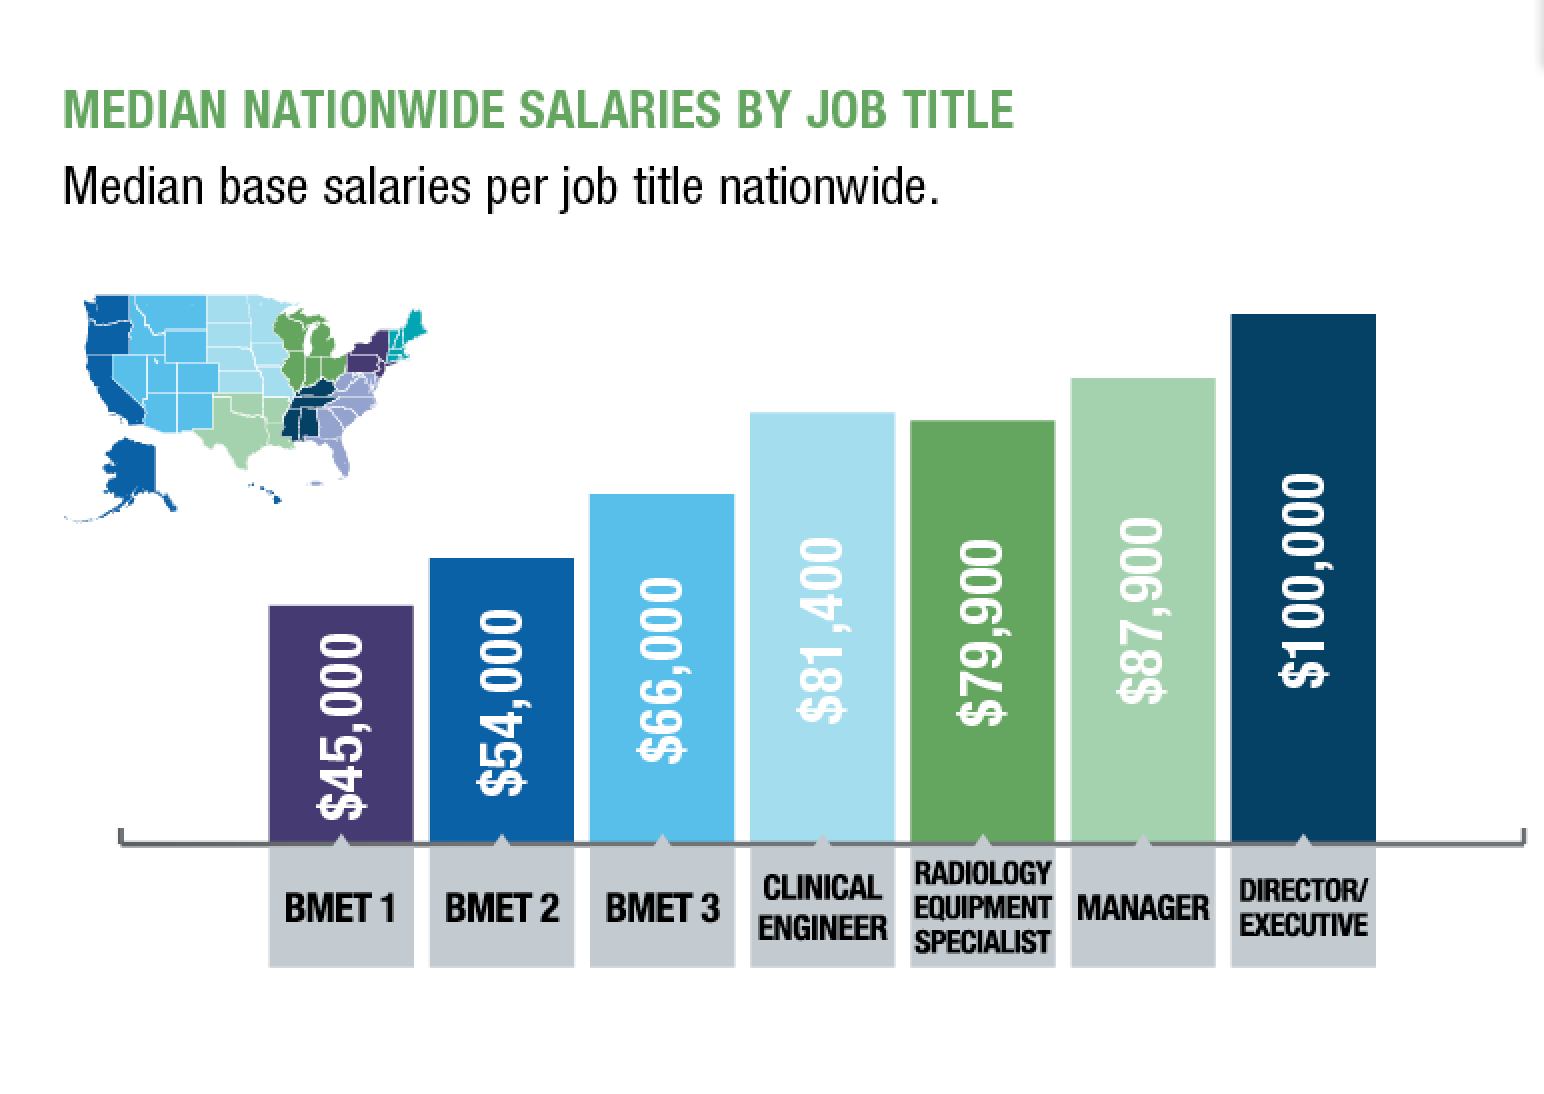 Median base salaries by job title nationwide. (Click to enlarge.)